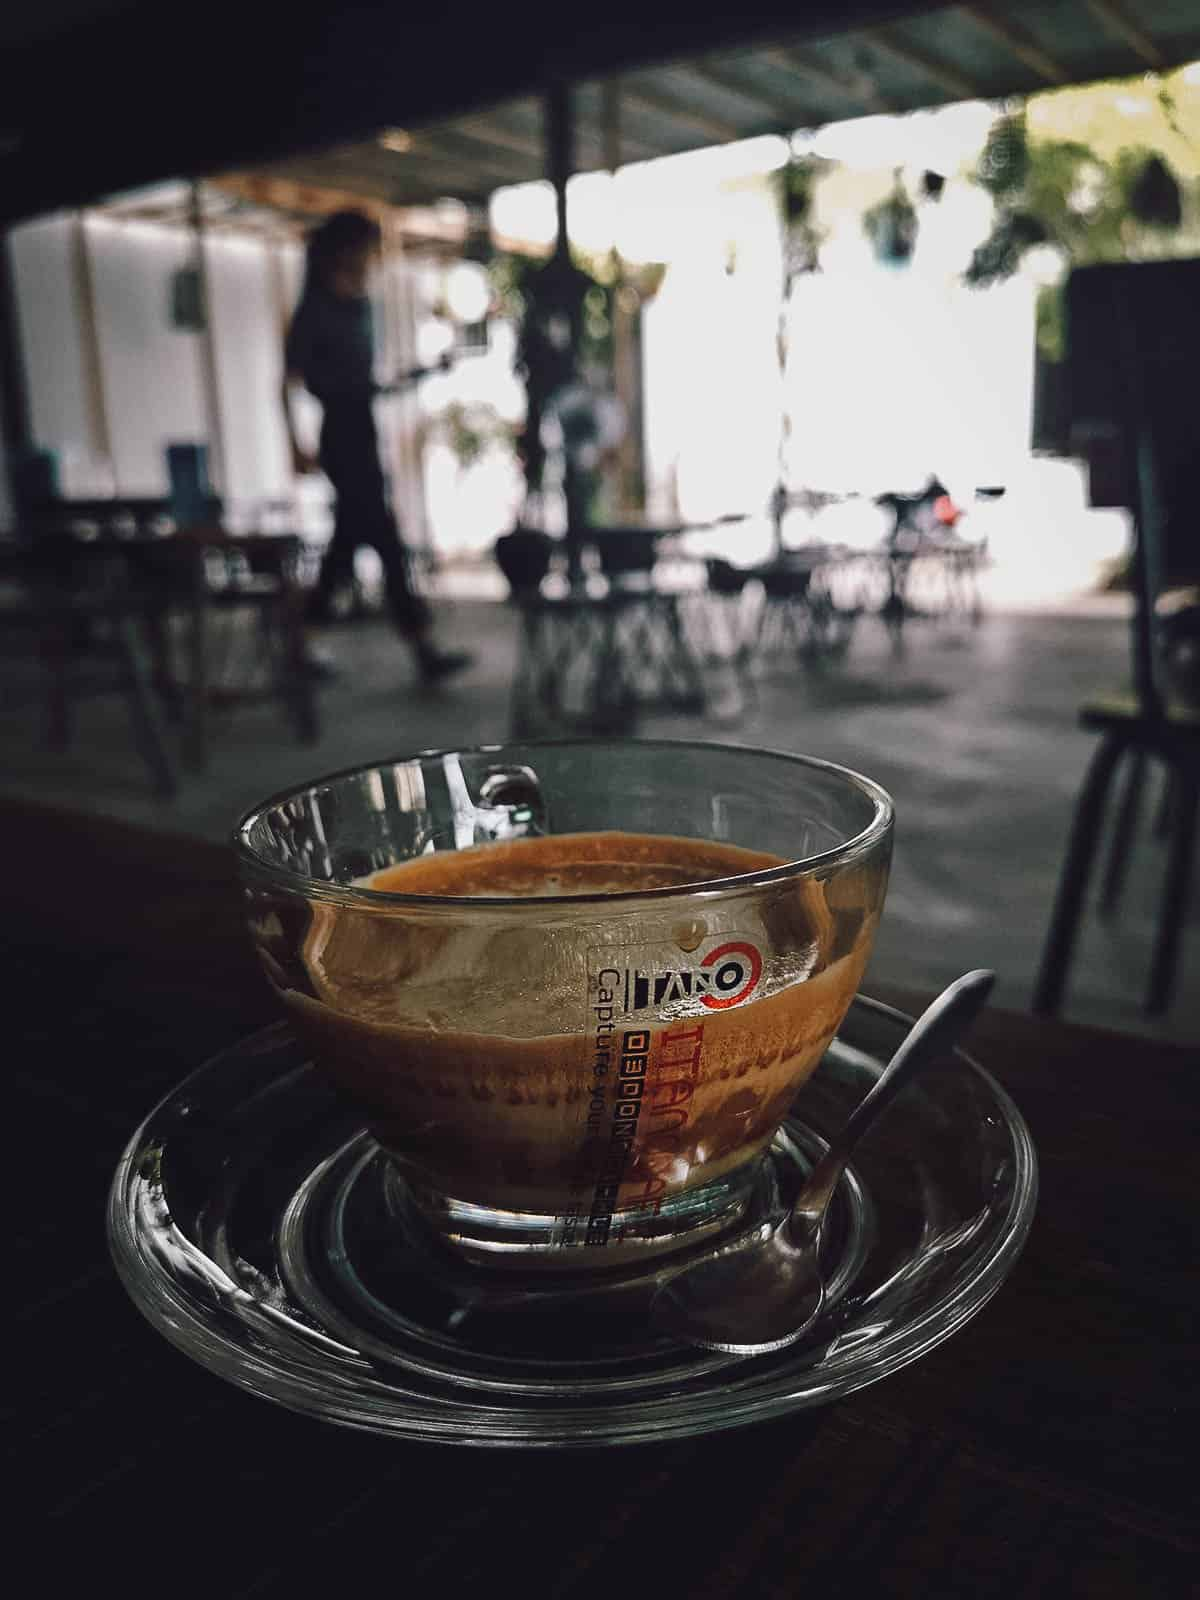 Salt coffee at Itano Cafe in Hue, Vietnam